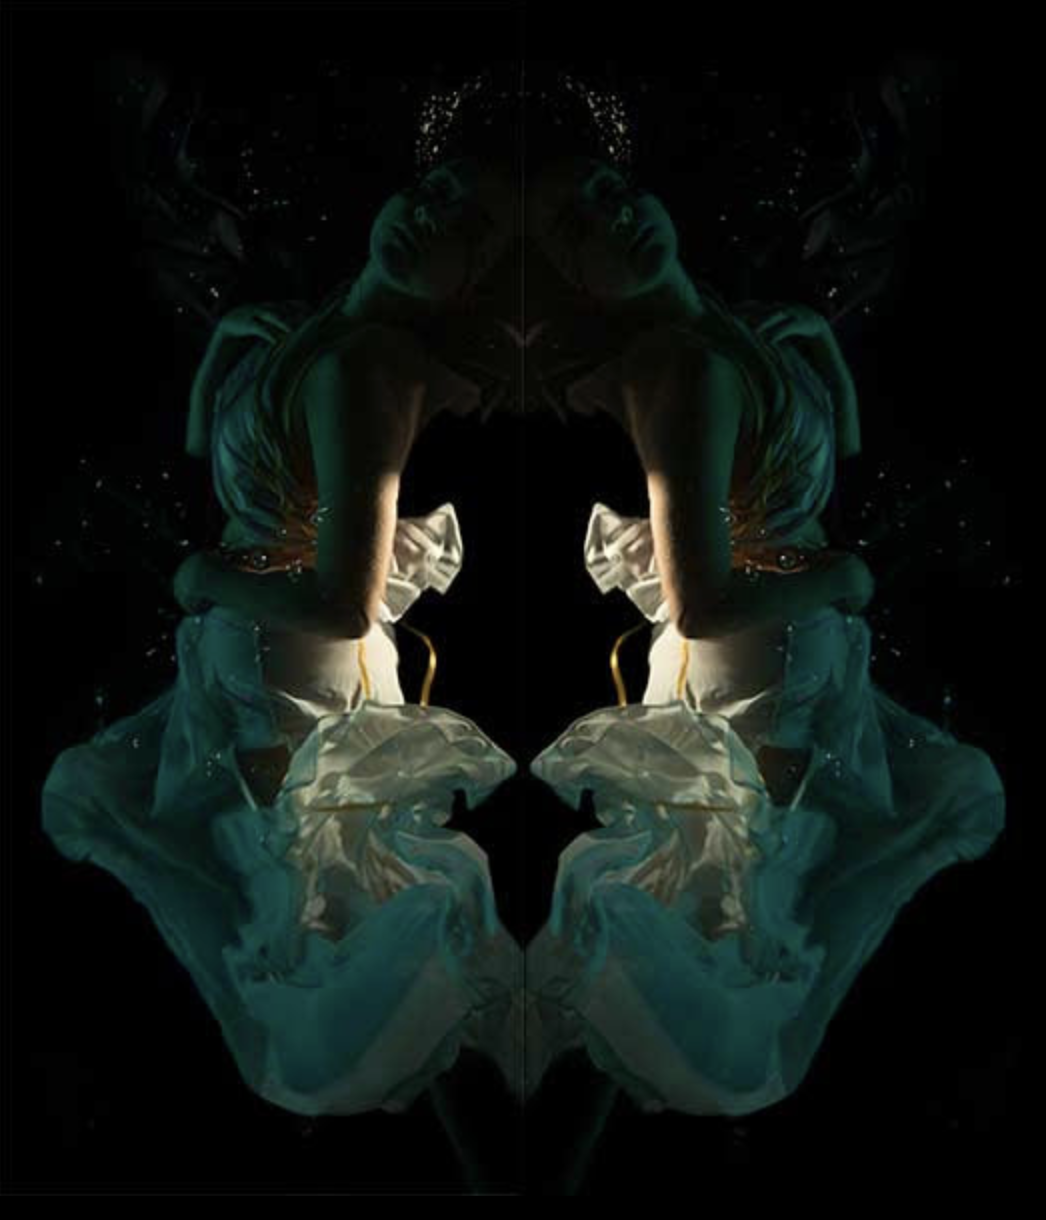 Christy Lee Rogers, Reflected in the Stars  Archival Pigment Print